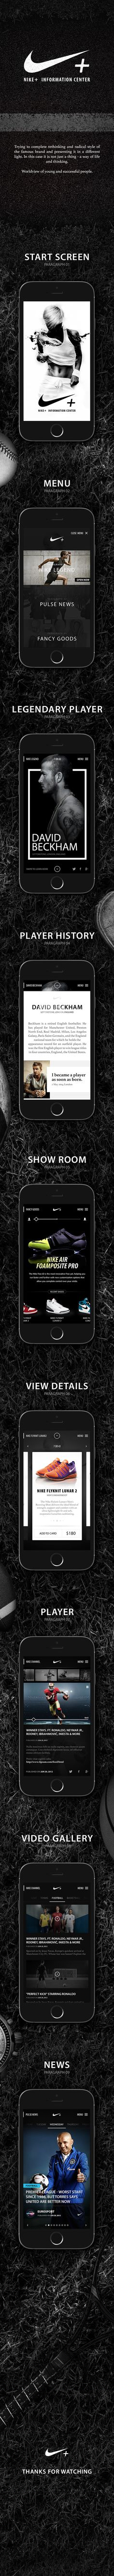 Nike. New Look & Concept on Behance #app design #web